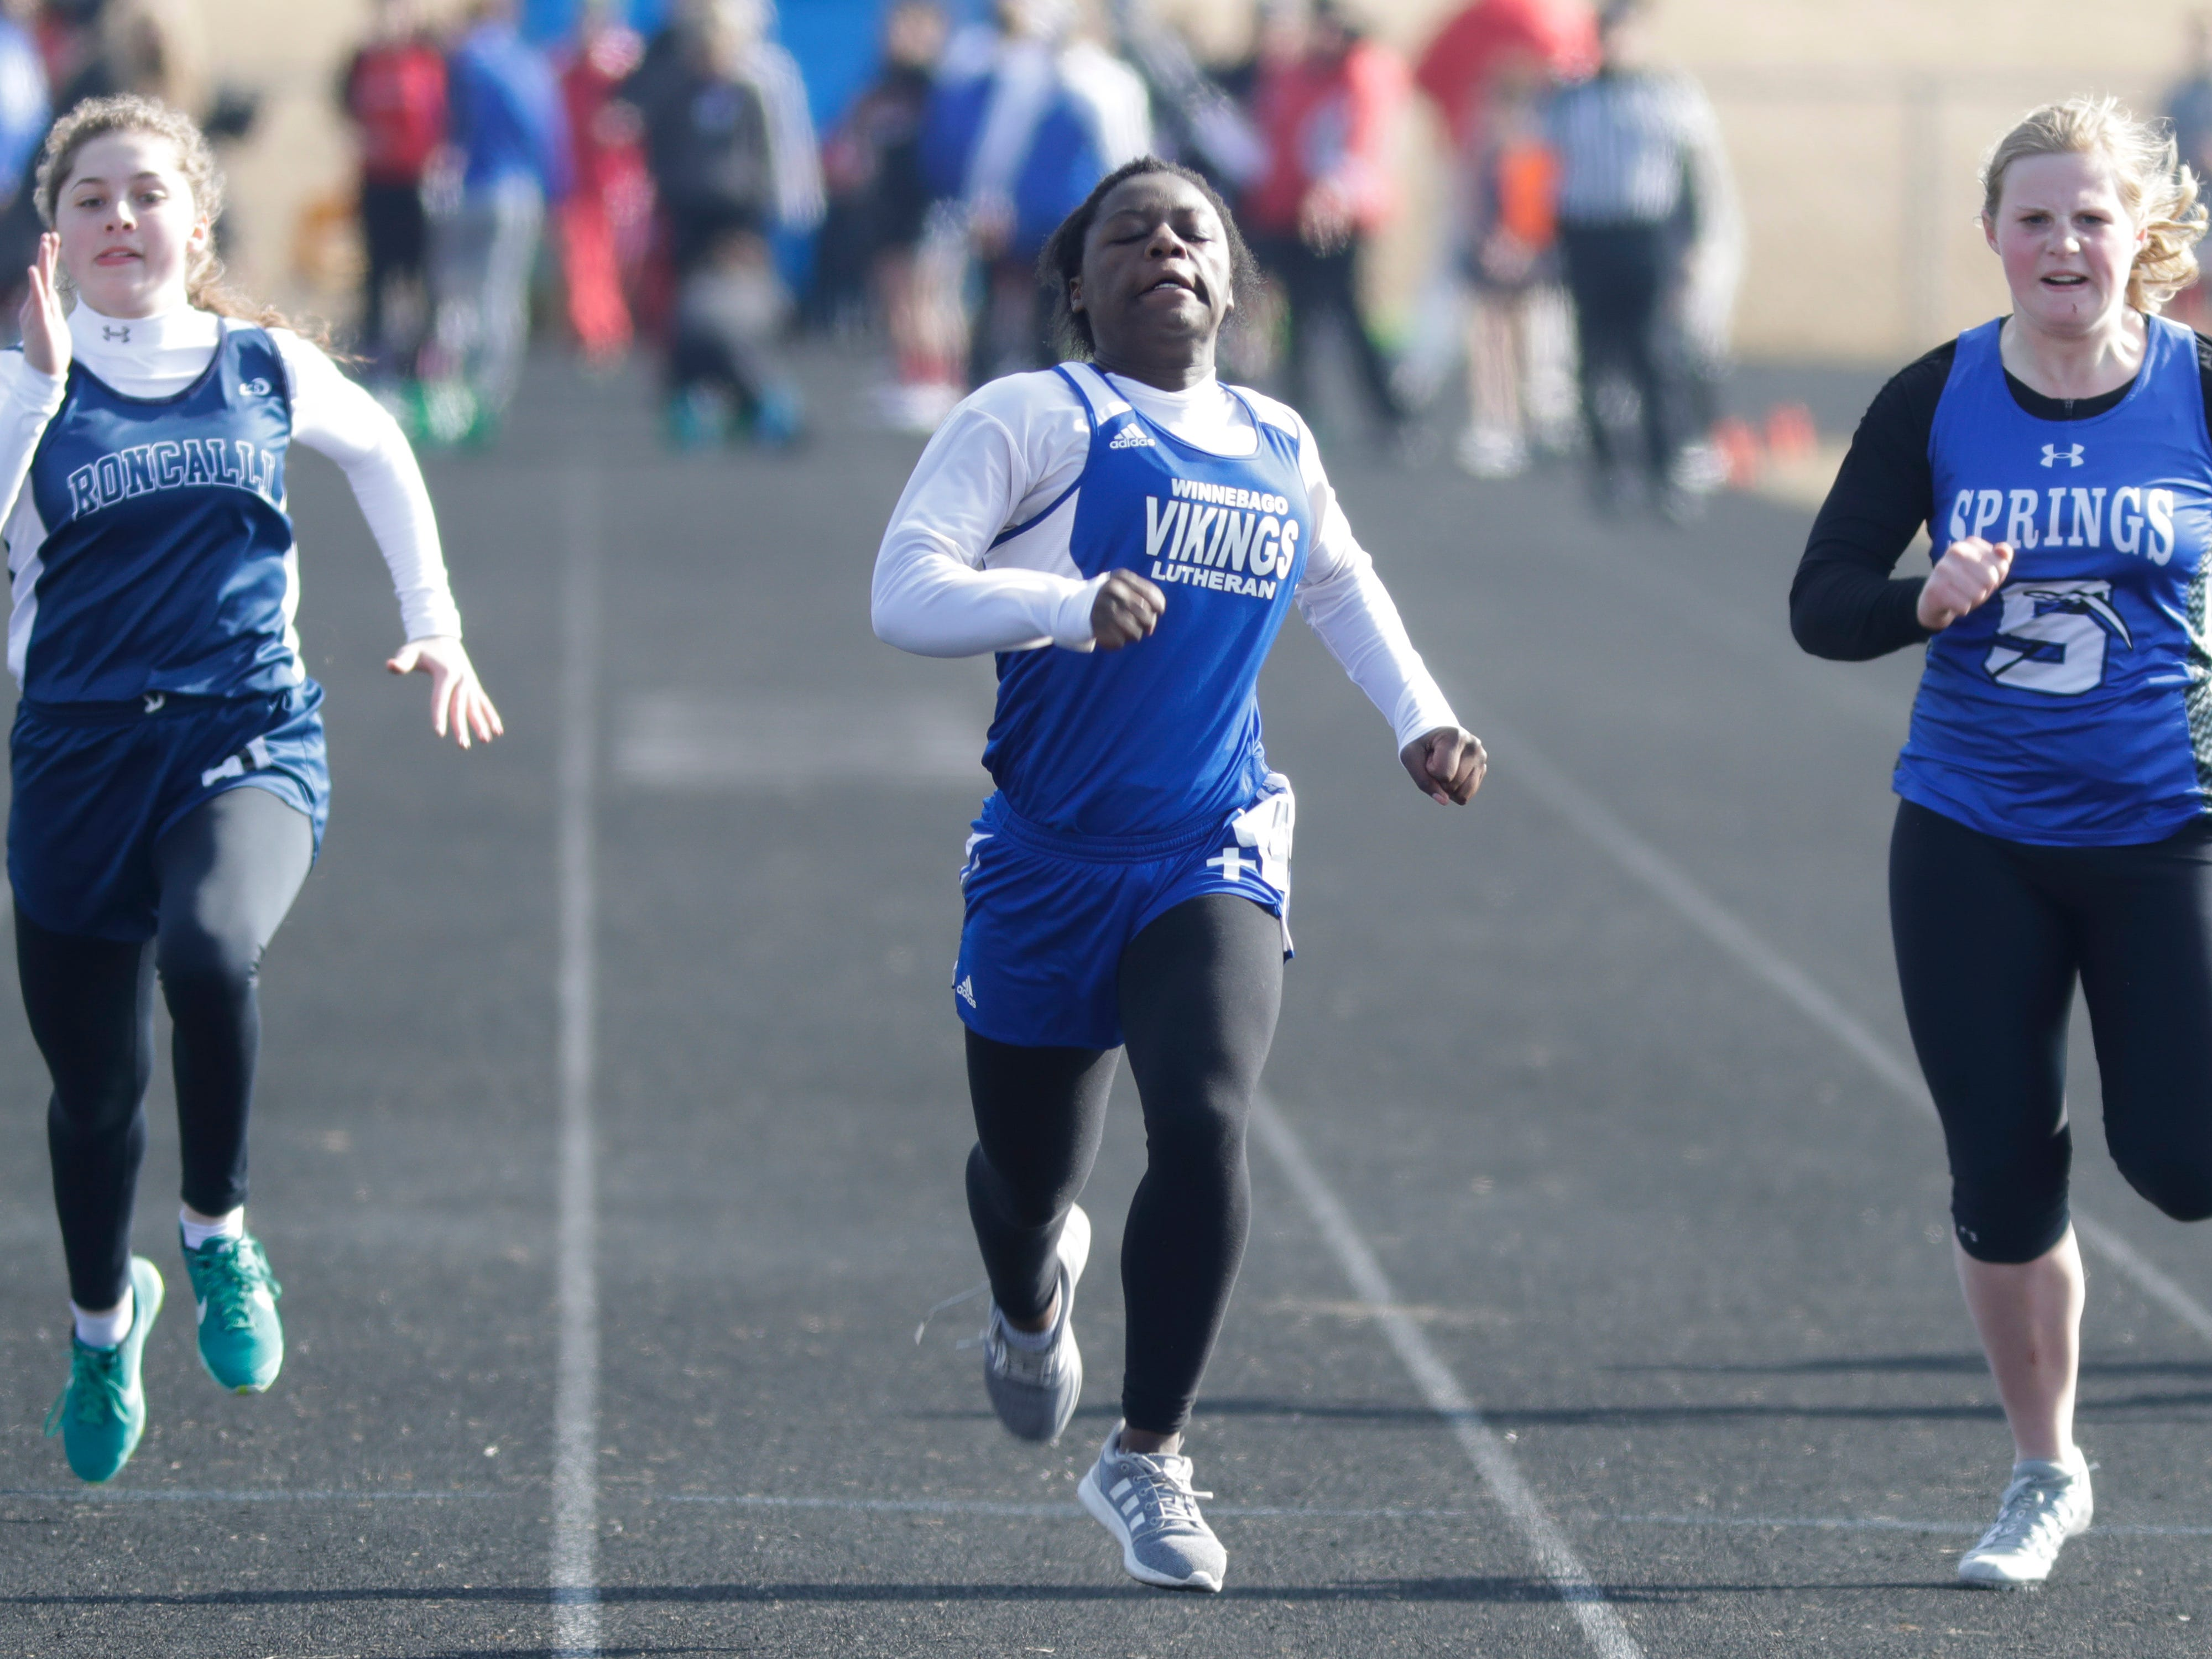 Roncalli's Jayme Jirokovic, left, Winnebago Lutheran's Diamond Lange and St. Mary Springs' Peyton Hyland, run a heat in the 100 meter dash at the Flying Dutchmen Invite, Friday, April 5, 2019, in Oostburg, Wis.